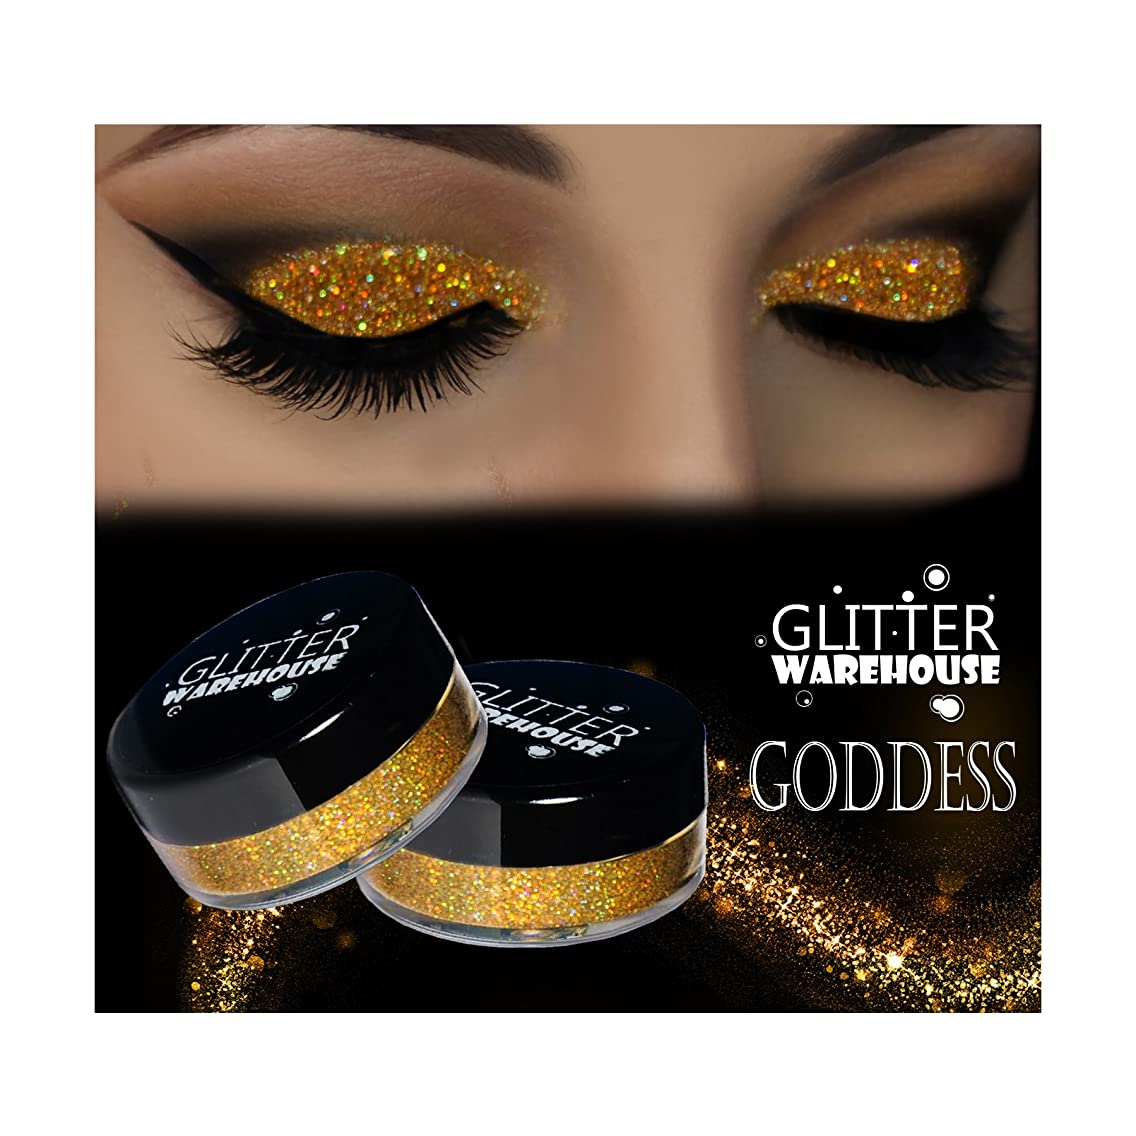 GlitterWarehouse Goddess Holographic Gold Loose Glitter Powder for Eyeshadow, Makeup, Nail Art, Body Tattoo